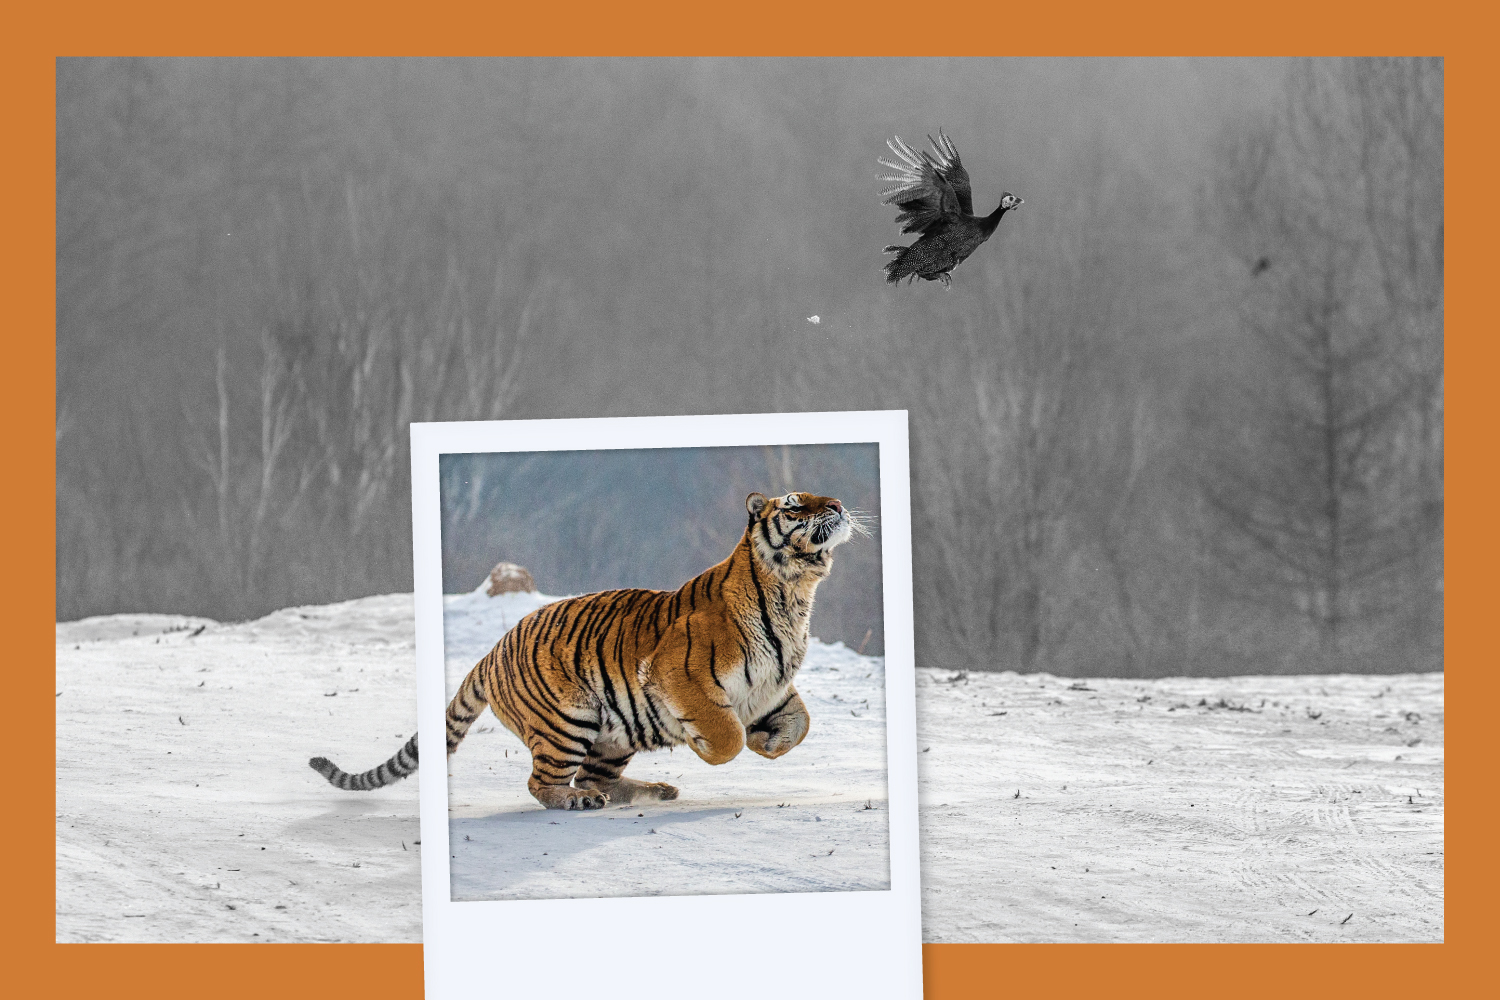 A cropped photo of a leaping tiger is superimposed on the original version of the photo, in which we can now see a bird flapping away from the leaping tiger.